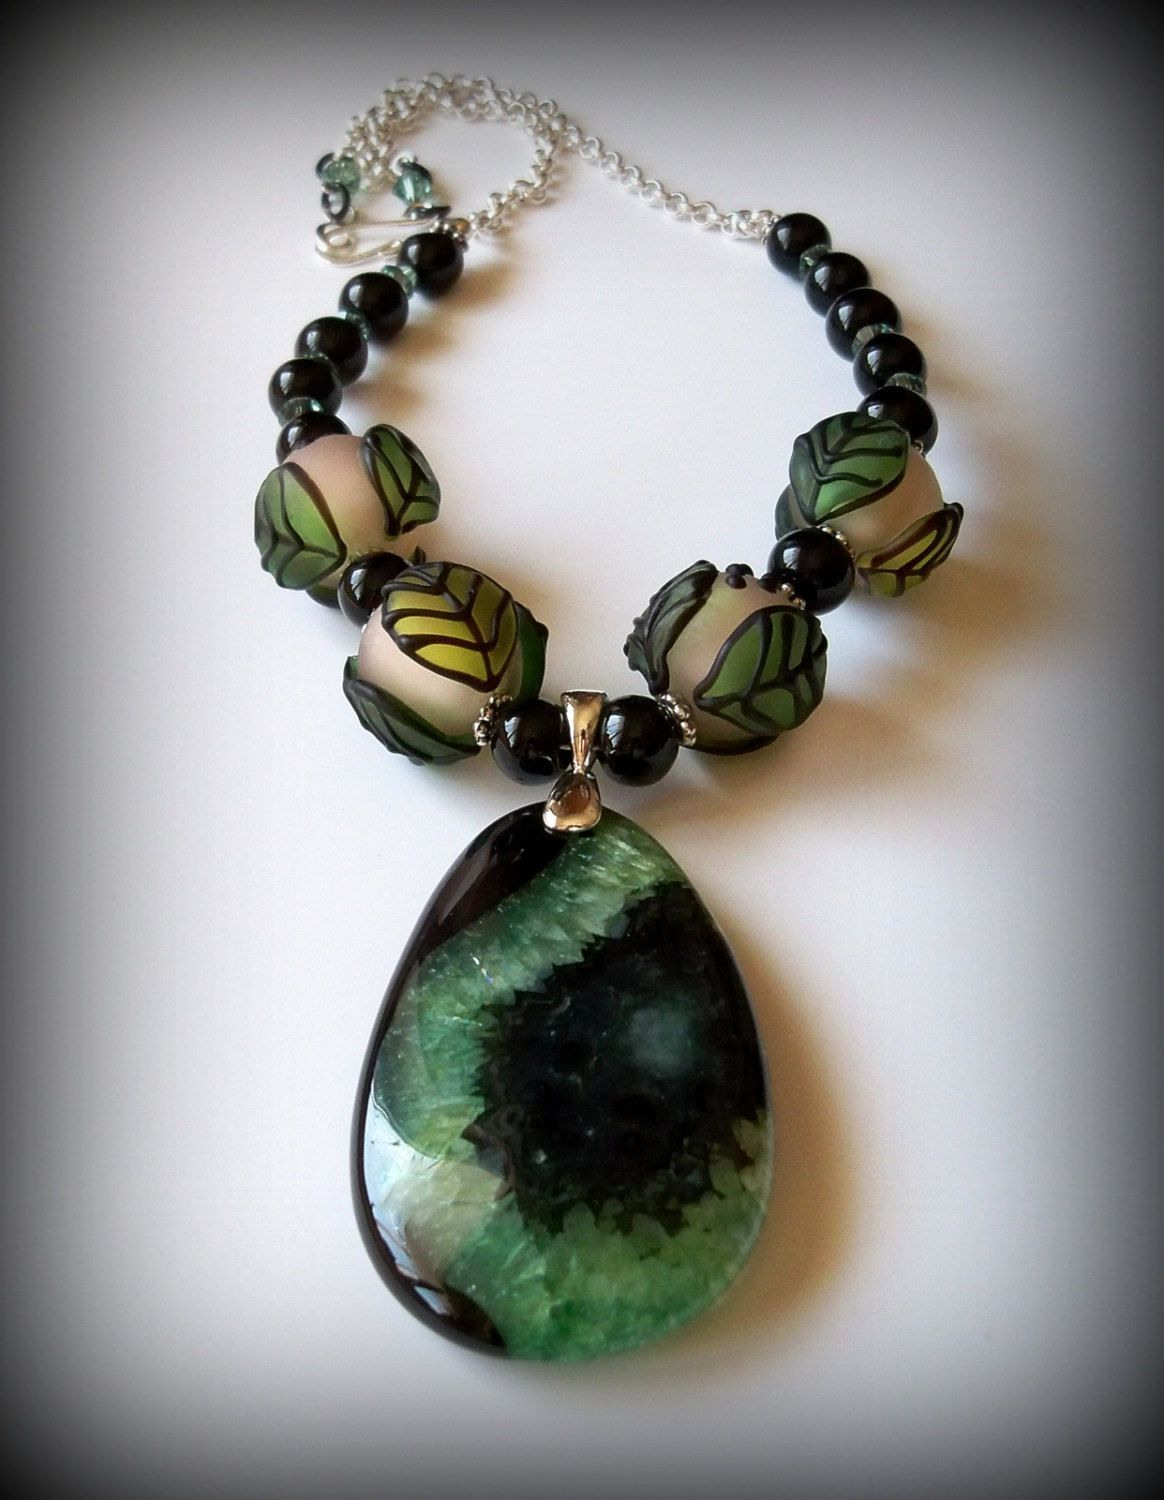 Green and Black Agate Pendant Necklace by MyDancingRainbows on Etsy #necklace #Agate #jewelry #MyDancingRainbows #Etsy